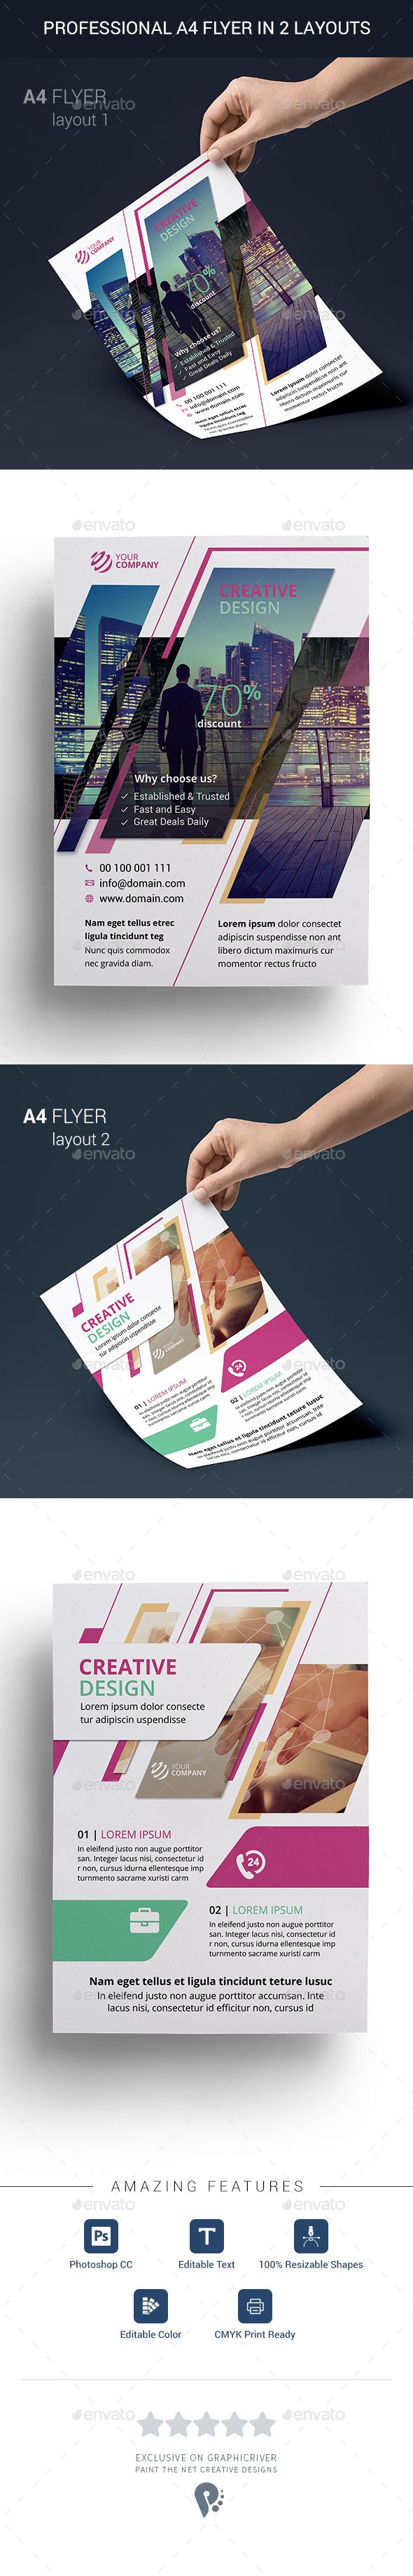 Professional Multi-purpose A4 #Flyer in 2 Layouts - Corporate Flyers